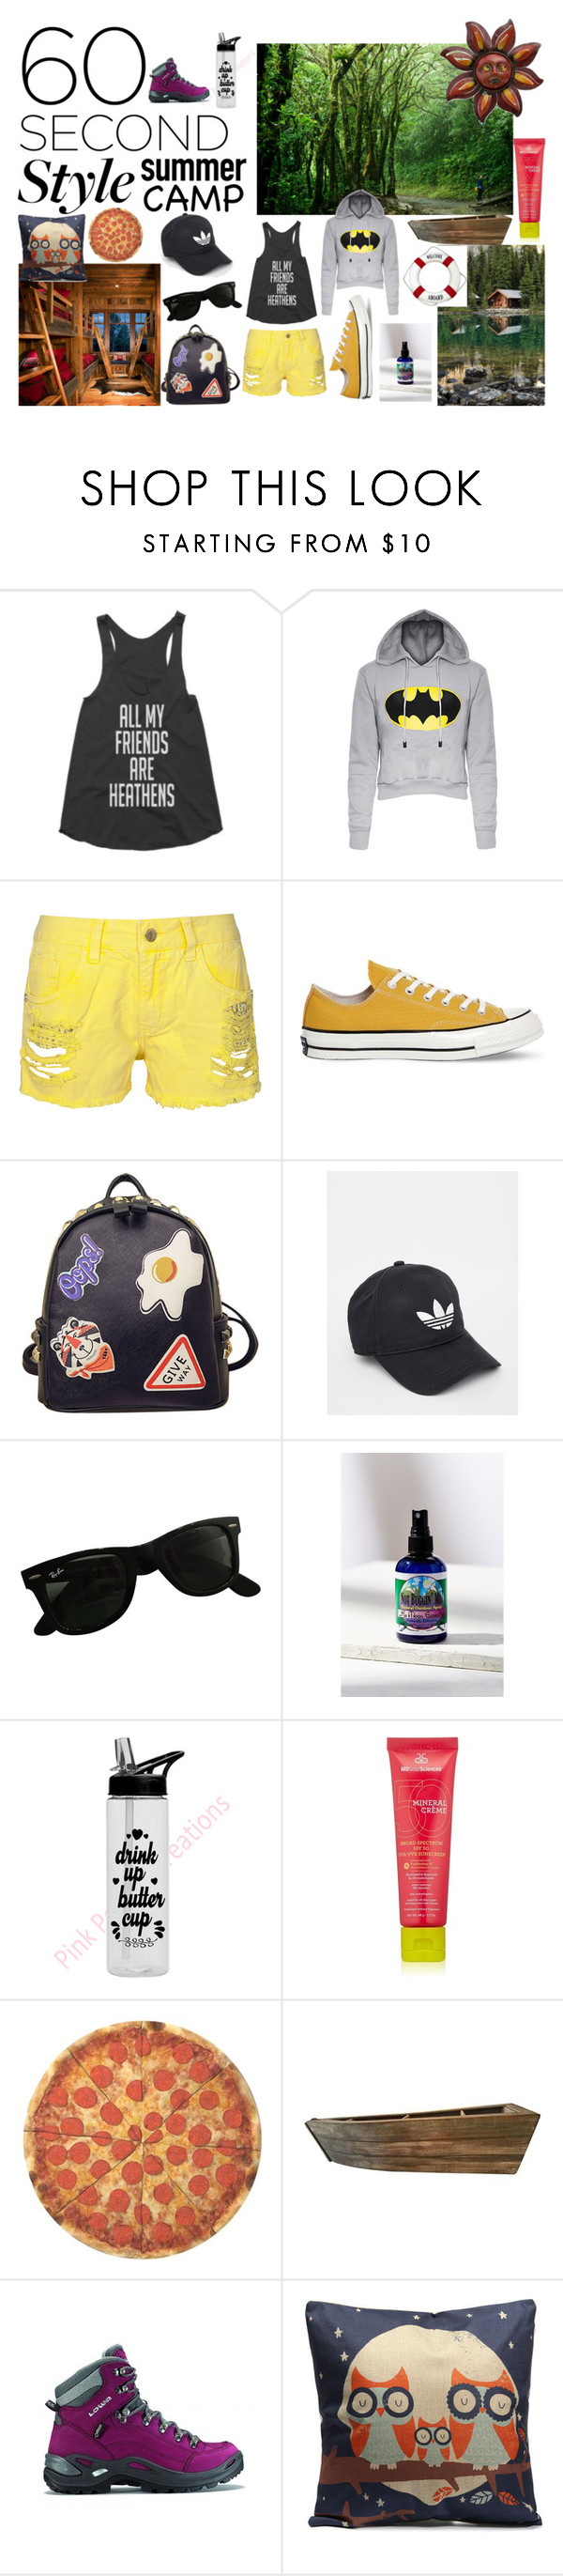 Summer Camp by bittlesamatha on Polyvore featuring Converse, Lowa, WithChic, adidas, Ray-Ban, MDSolarSciences, Little Moon Essentials, NOVICA, Round Towel Co. and summercamp